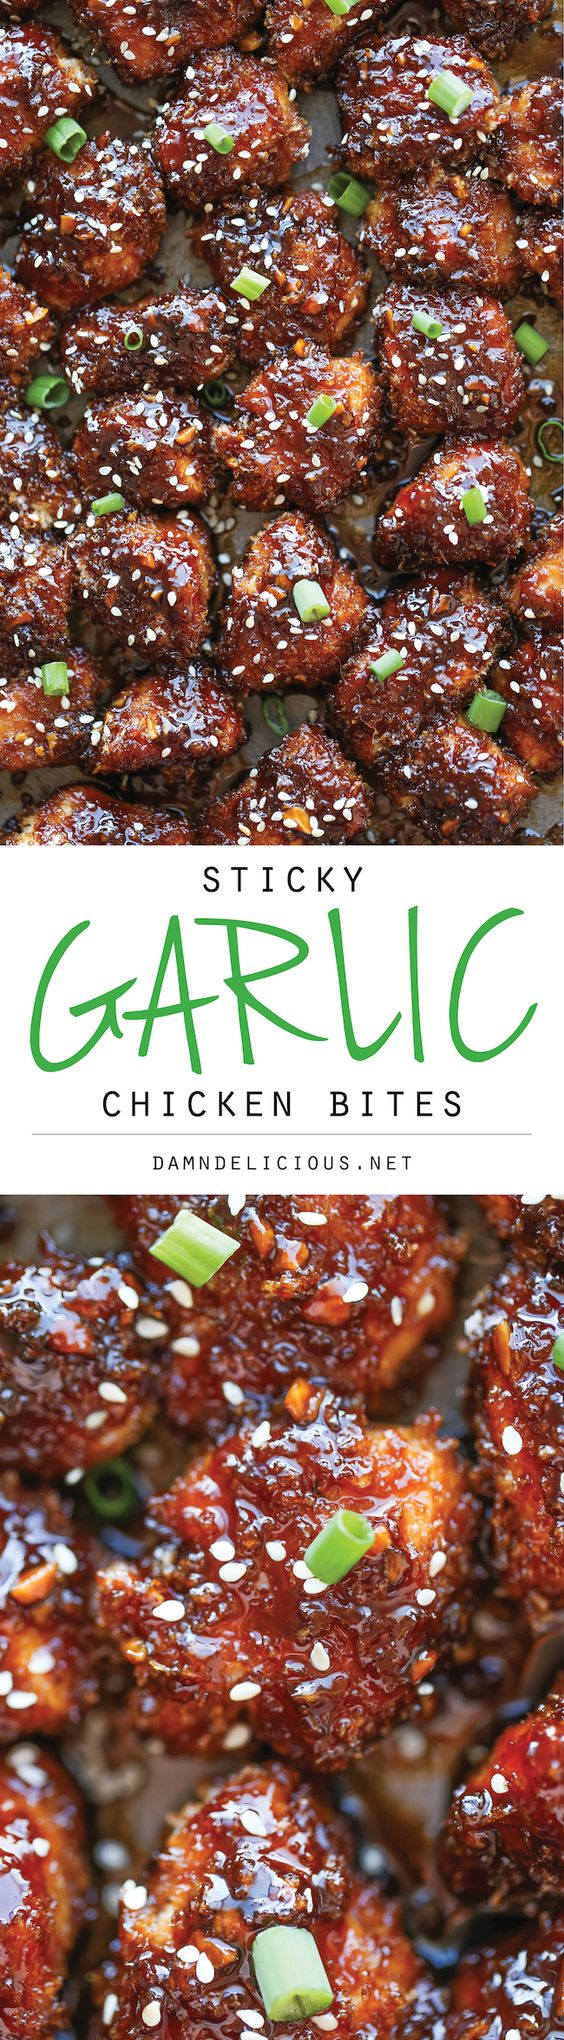 Sticky Garlic Chicken Bites - These easy baked chicken nuggets are sweet, sticky, and just finger-licking amazing!: